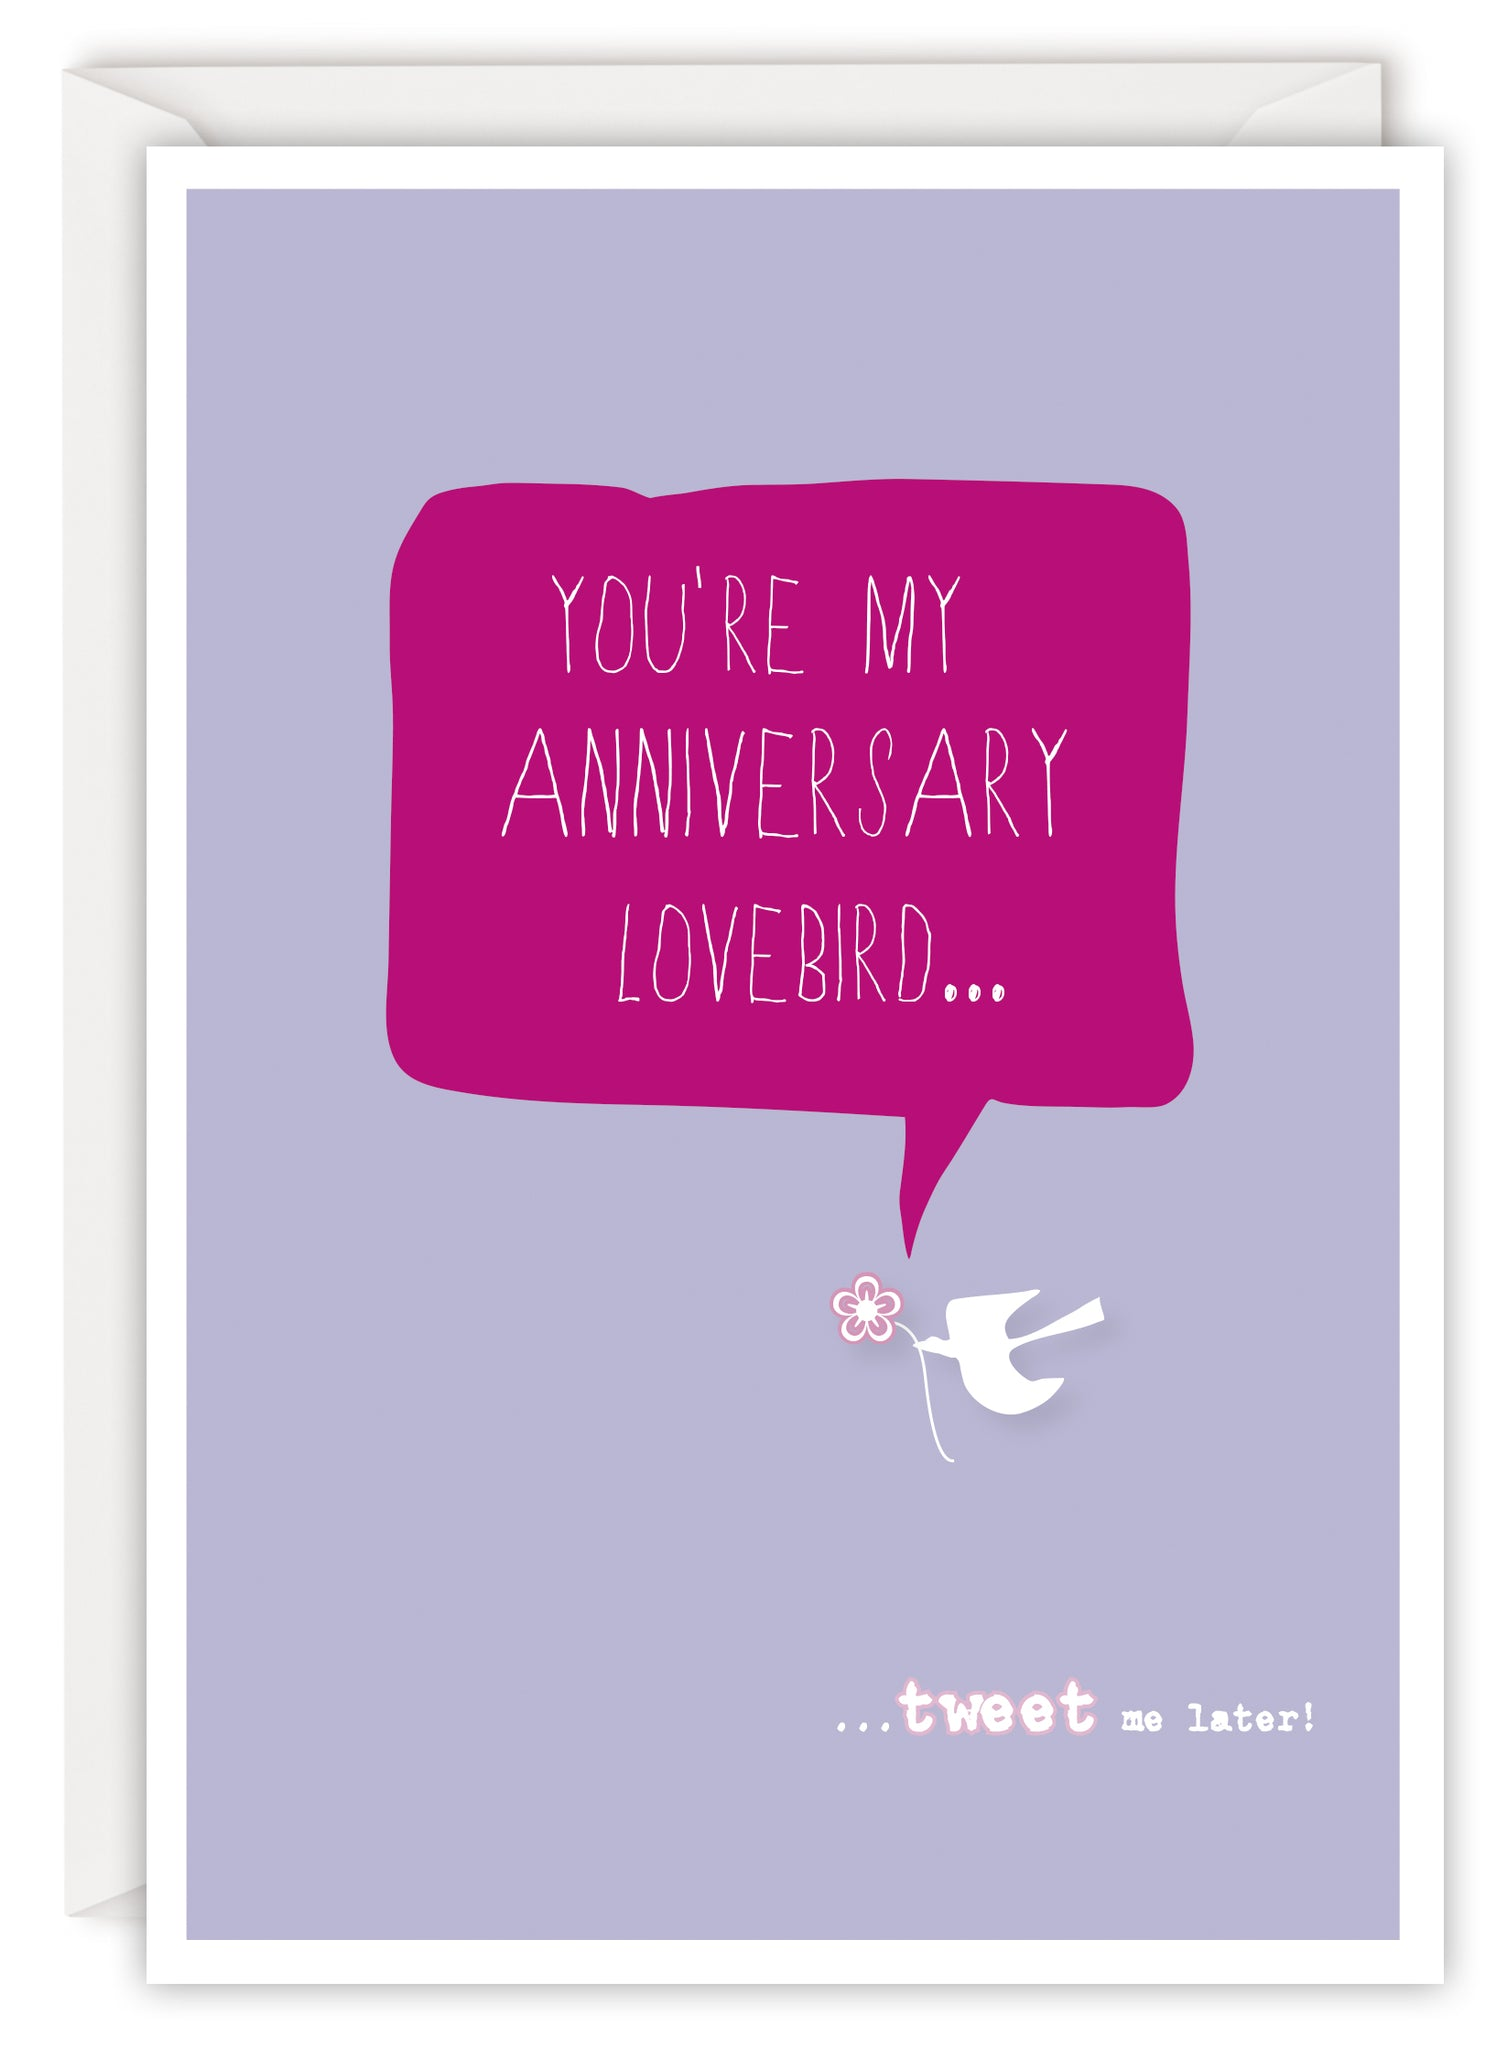 You're my anniversary lovebird…